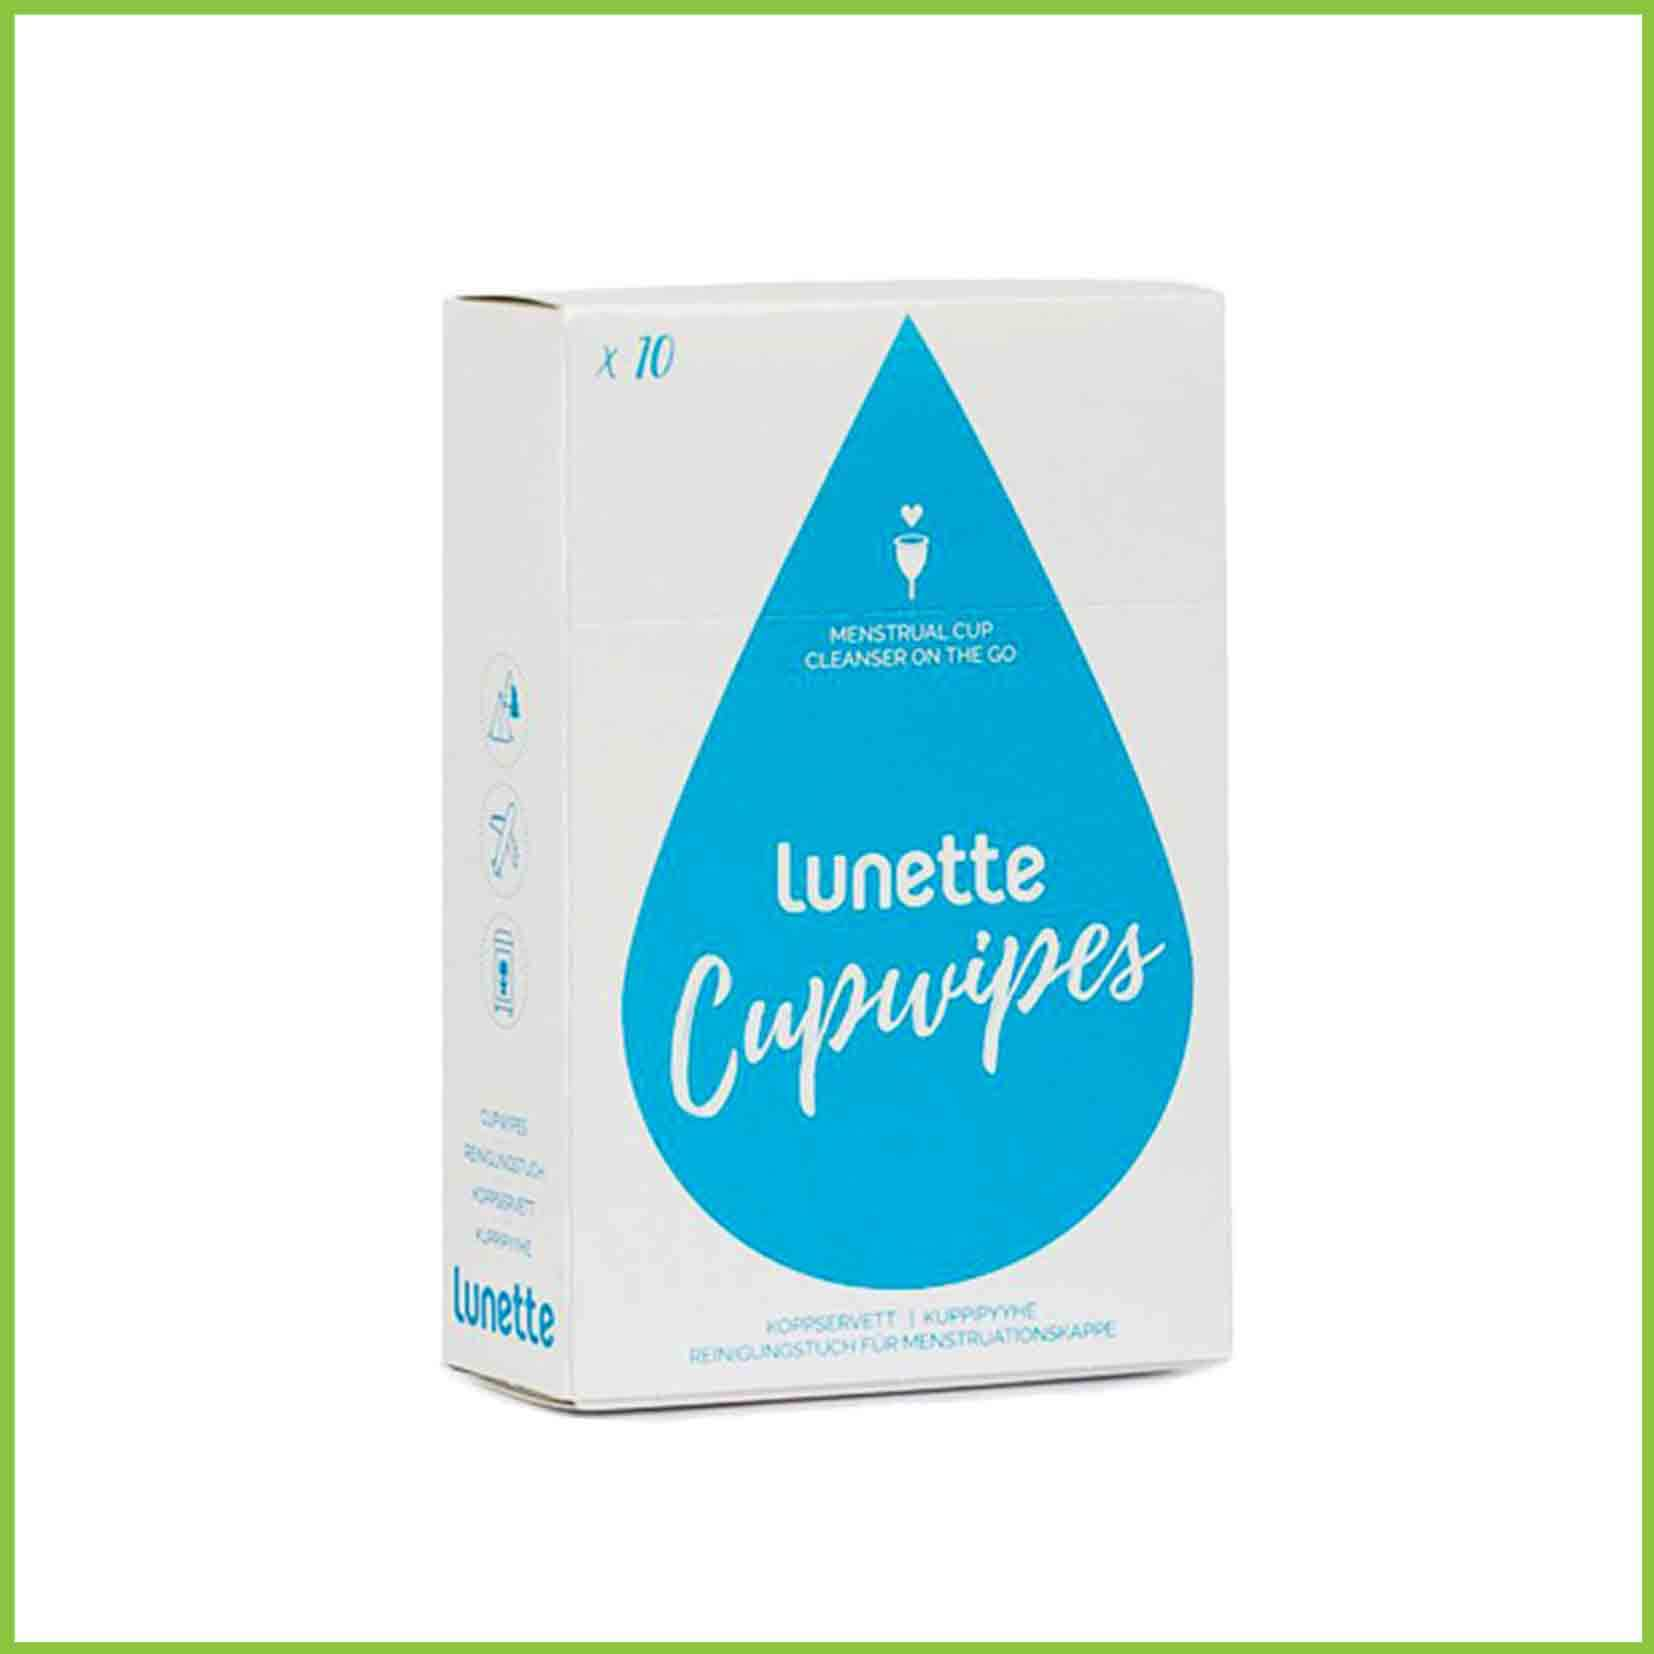 A 10 pack of Lunette cup wipes